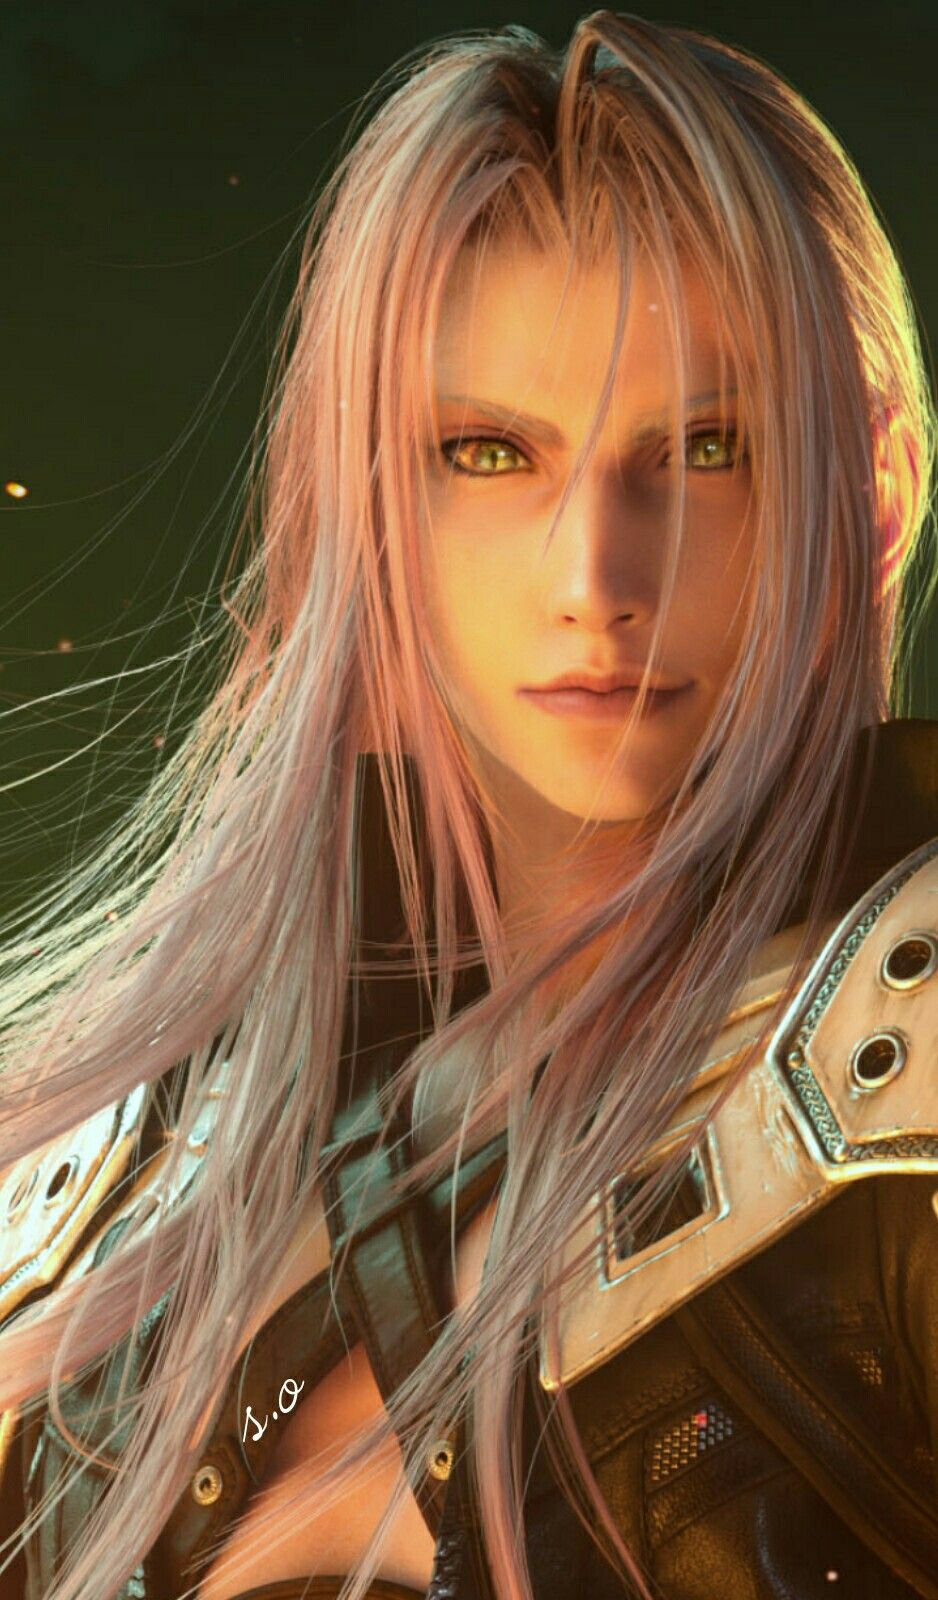 Ffvii Remake Sephiroth Final Fantasy Sephiroth Final Fantasy Characters Final Fantasy Tattoo